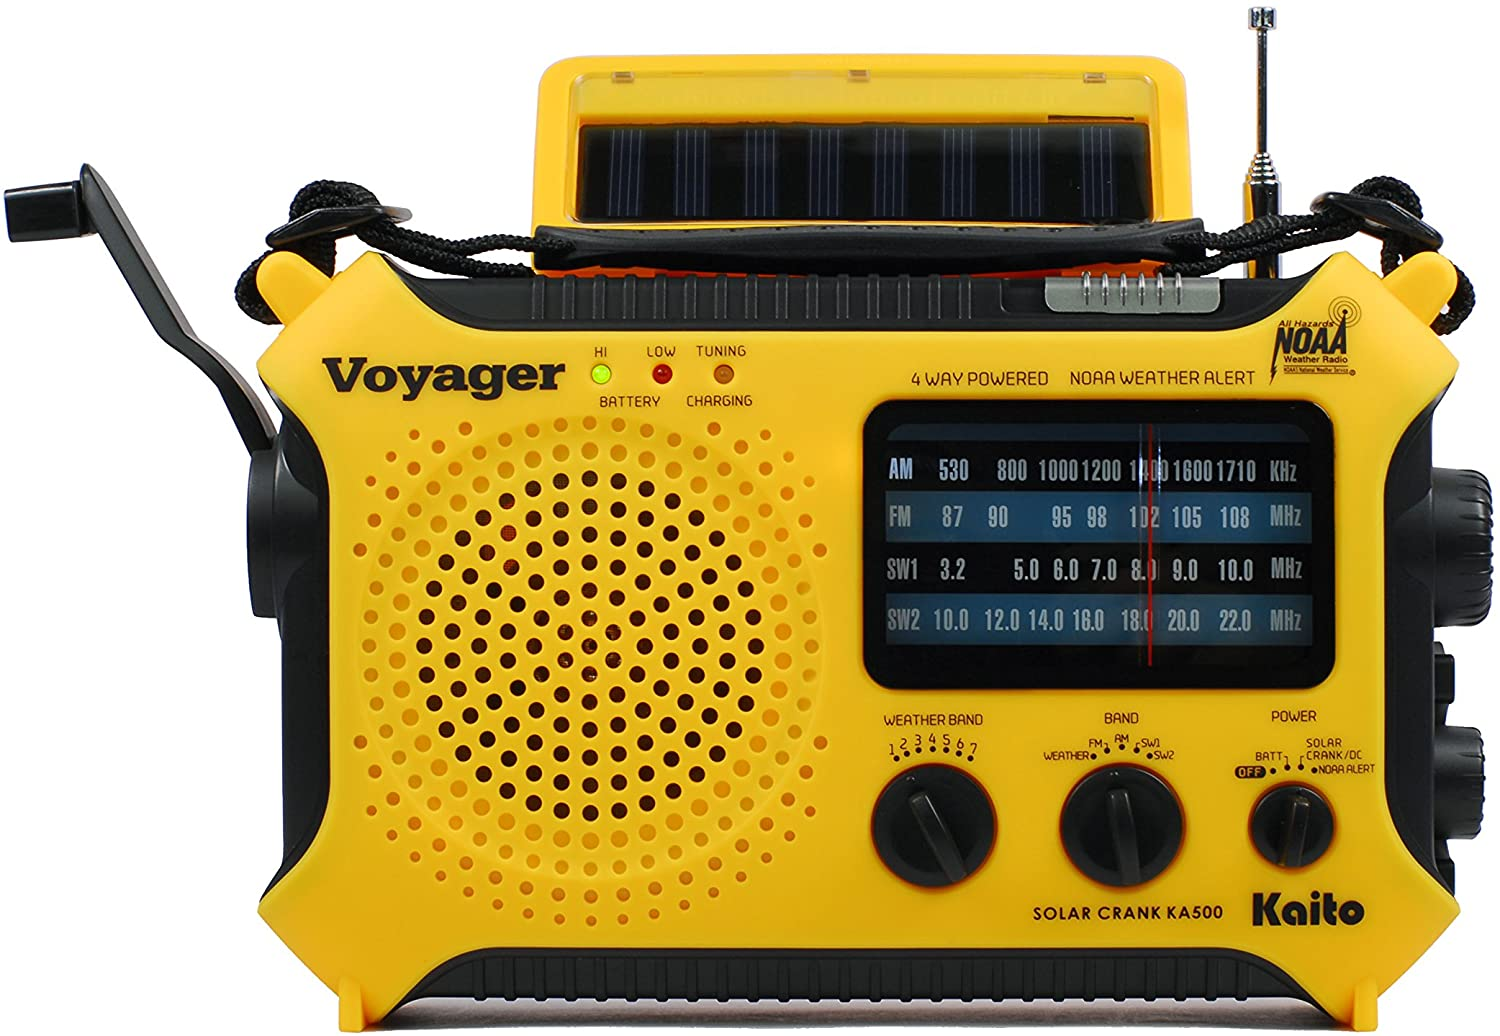 Battery Powered Radios For Emergencies